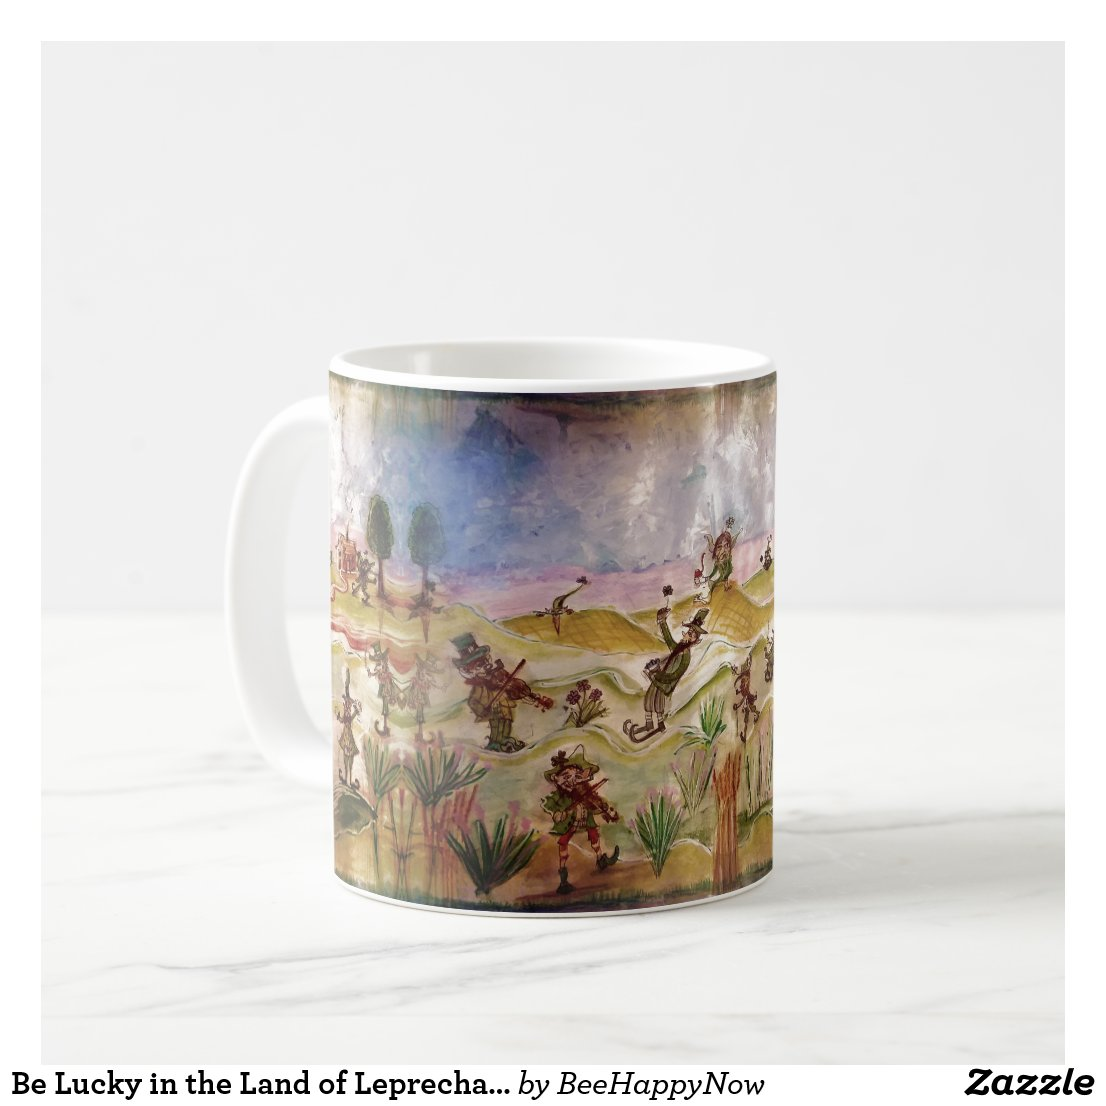 Be Lucky in the Land of Leprechauns Mug